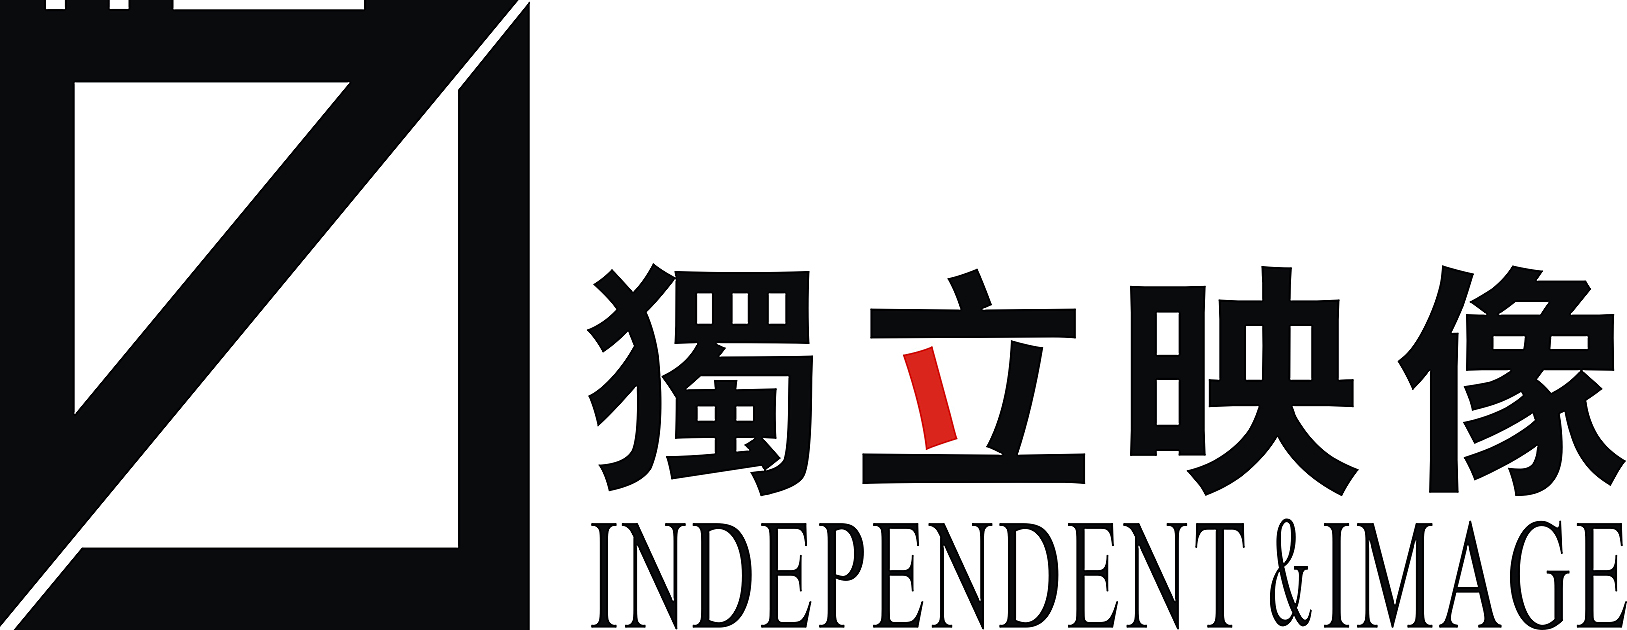 独立映像艺术空间 Independent & Image Art Space